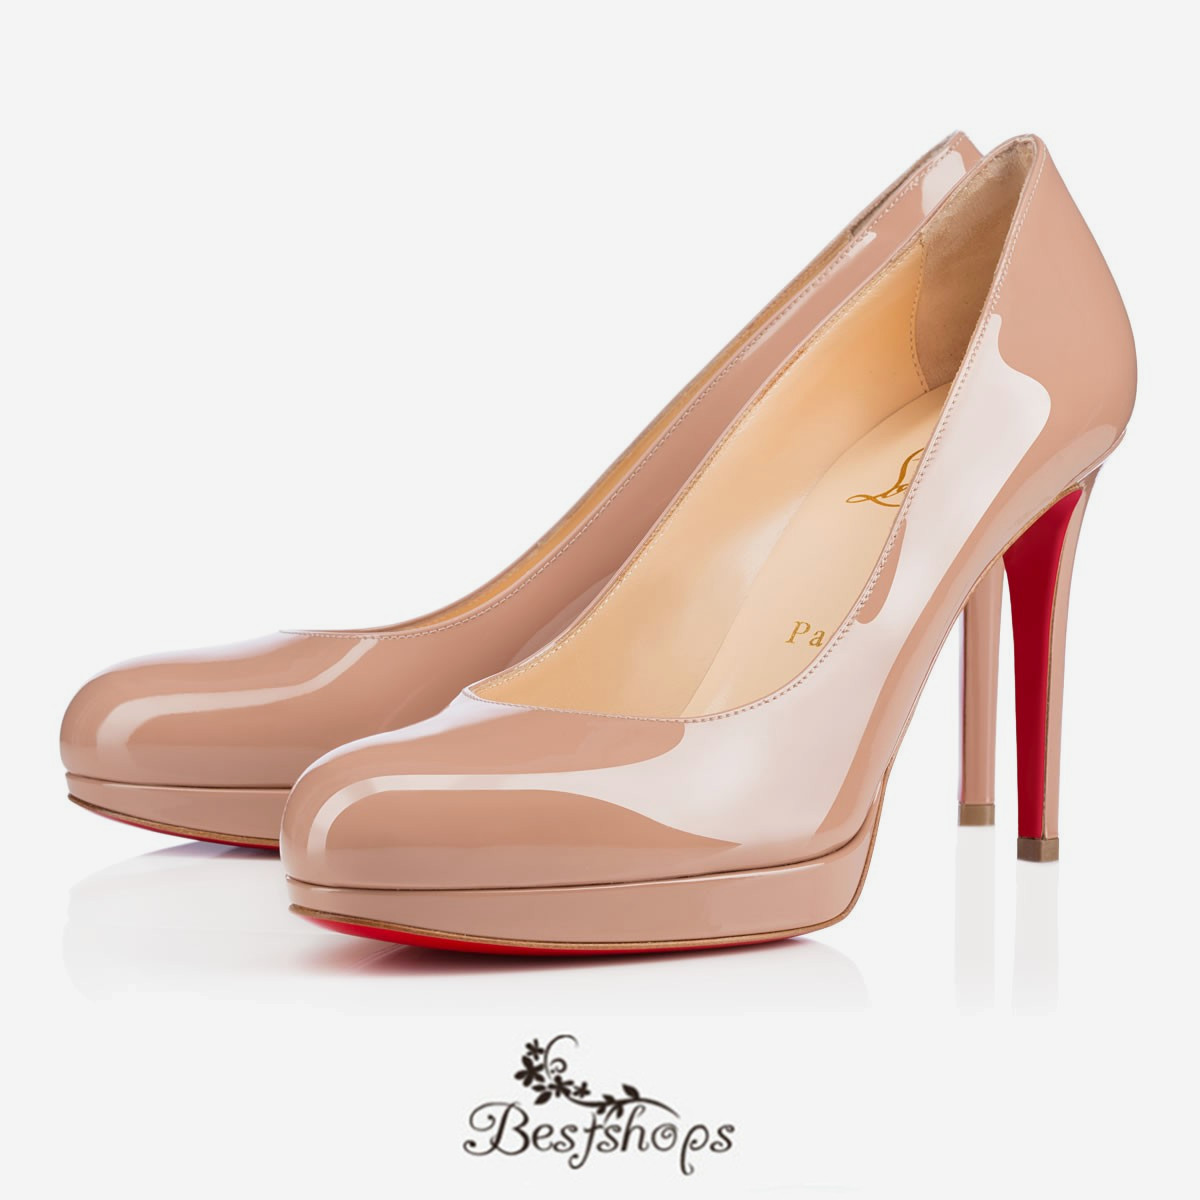 huge discount 1e306 793c1 New Simple Pump 100mm Nude Patent Leather BSCL900183